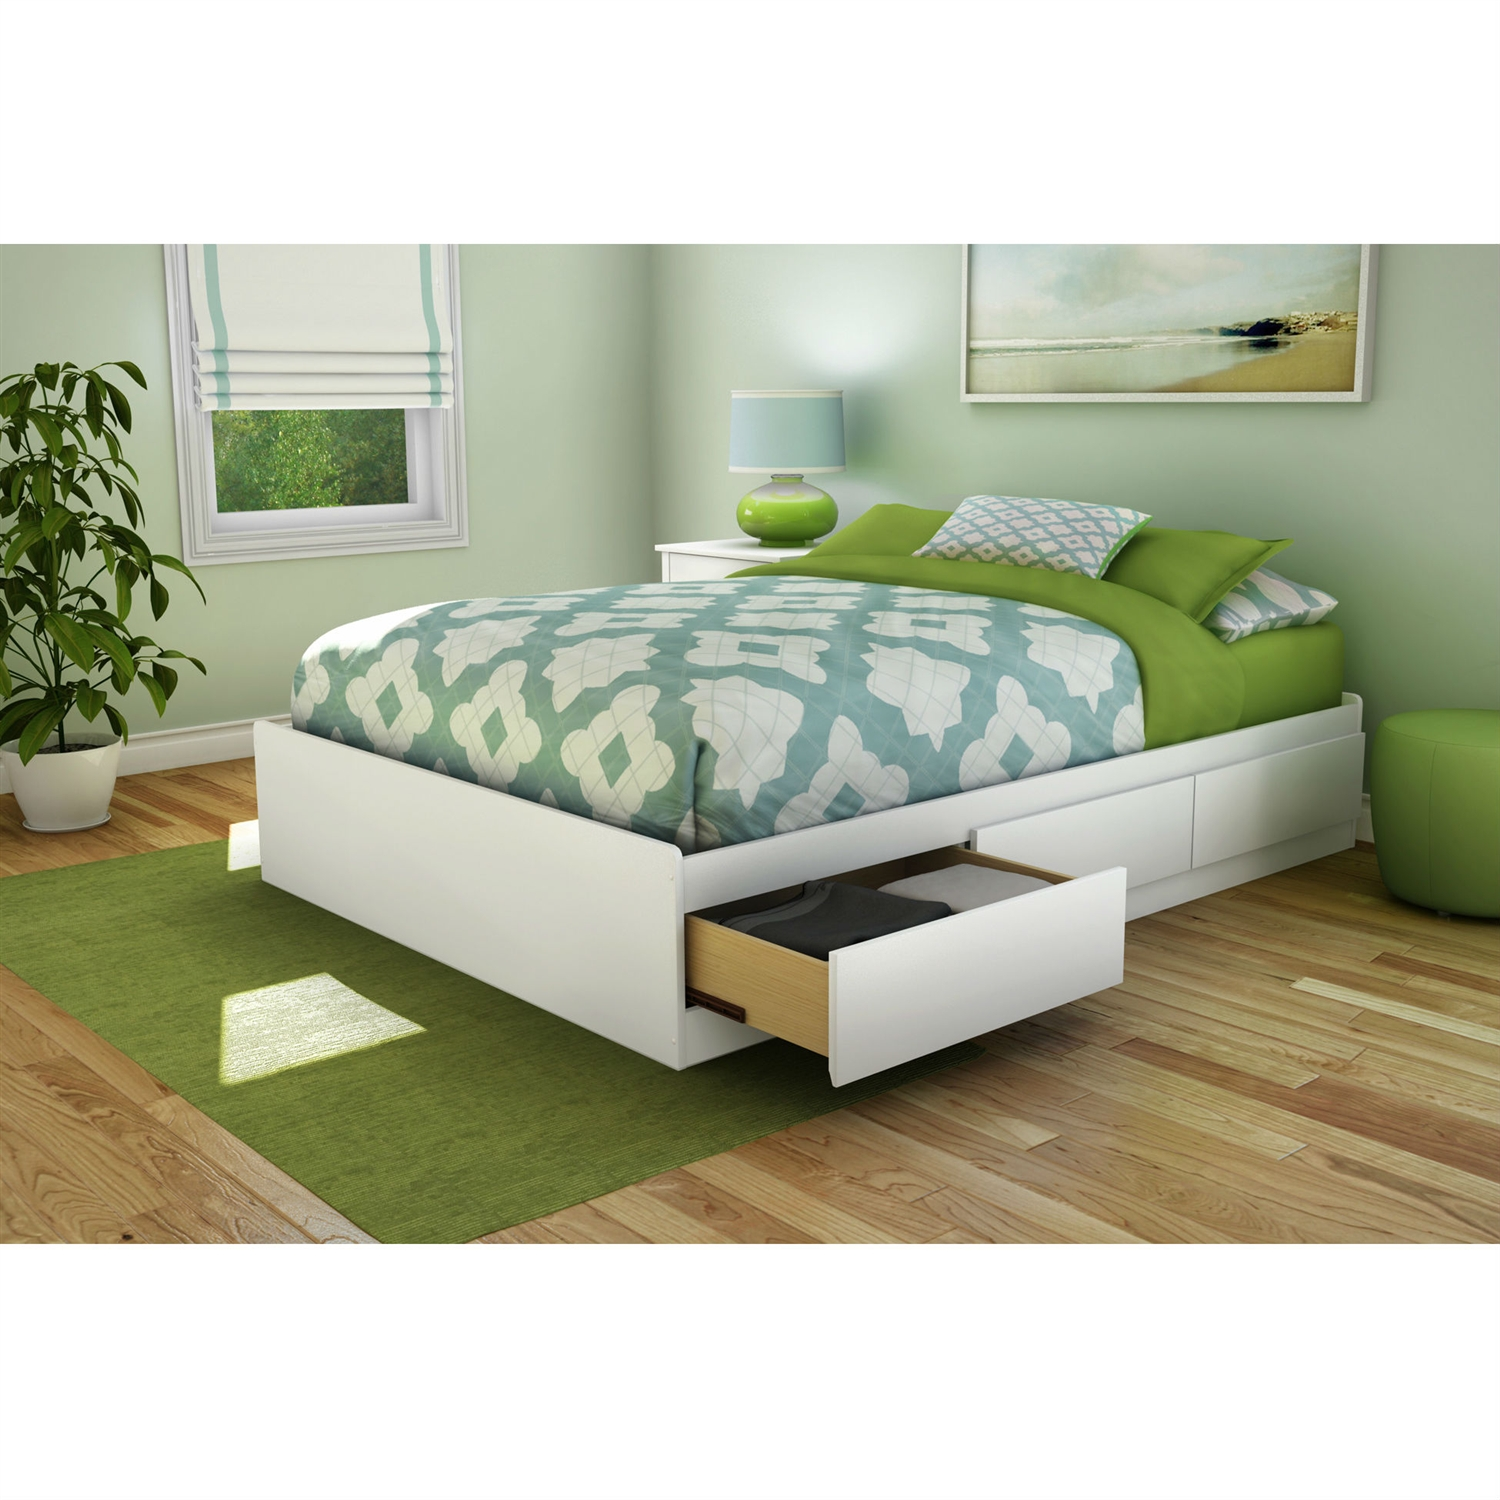 Image of: Full Size Contemporary Platform Bed With 3 Storage Drawers In White Fastfurnishings Com